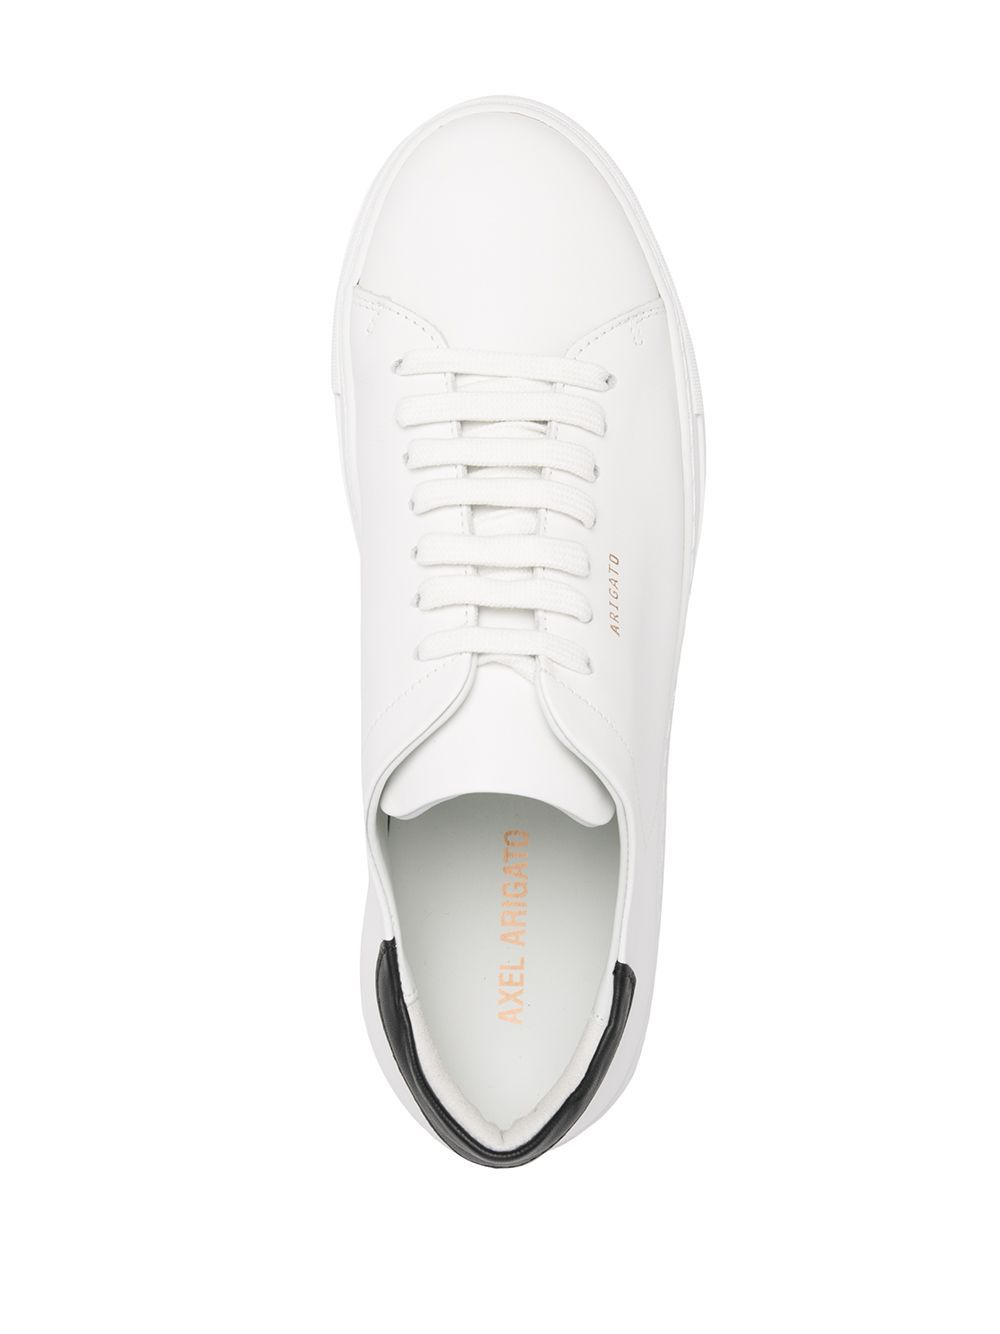 clean 90 contrast sneakers man white in leather AXEL ARIGATO | Sneakers | 28624WHITE/BLACK